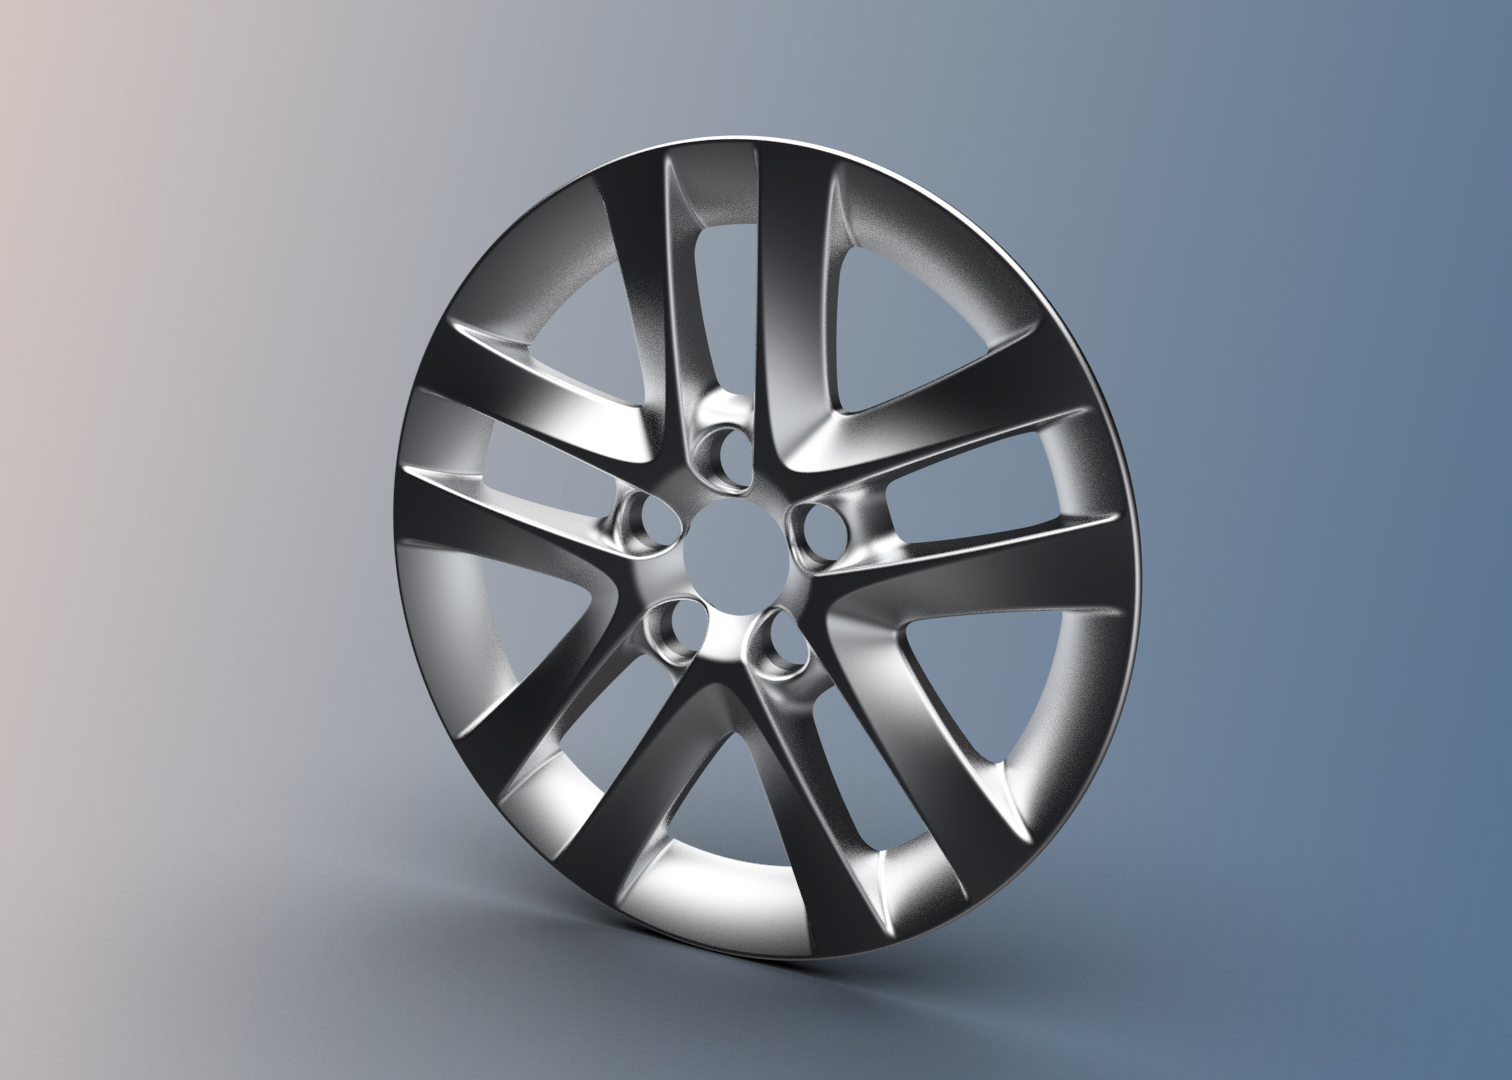 icem wheel render-background.jpg